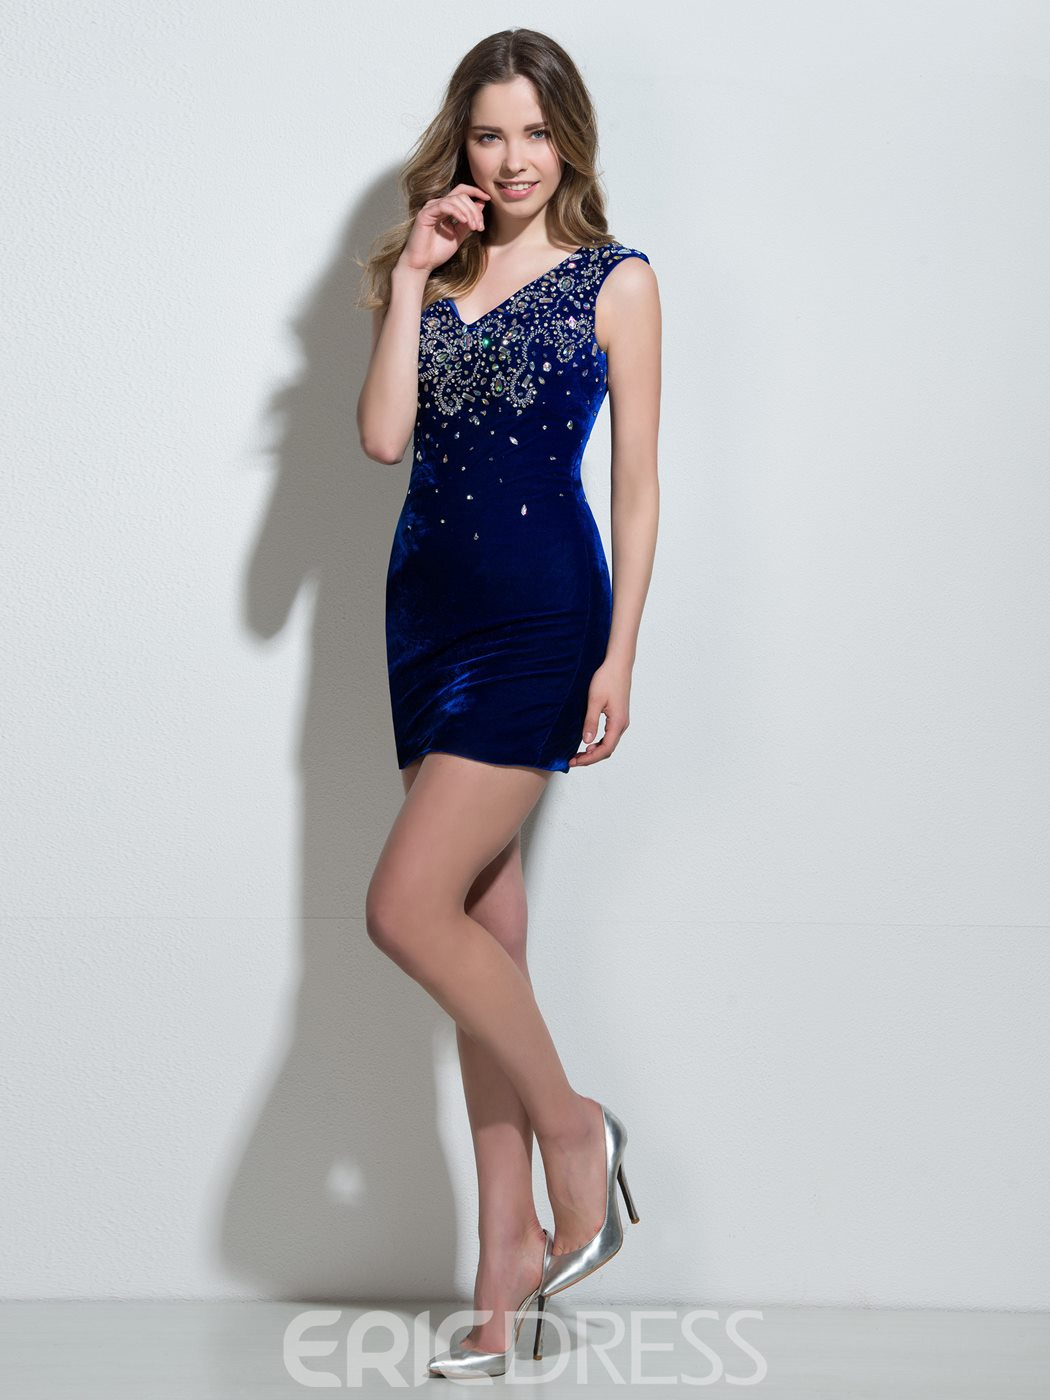 Ericdress gaine col en v perles robe de Cocktail courte de cristal